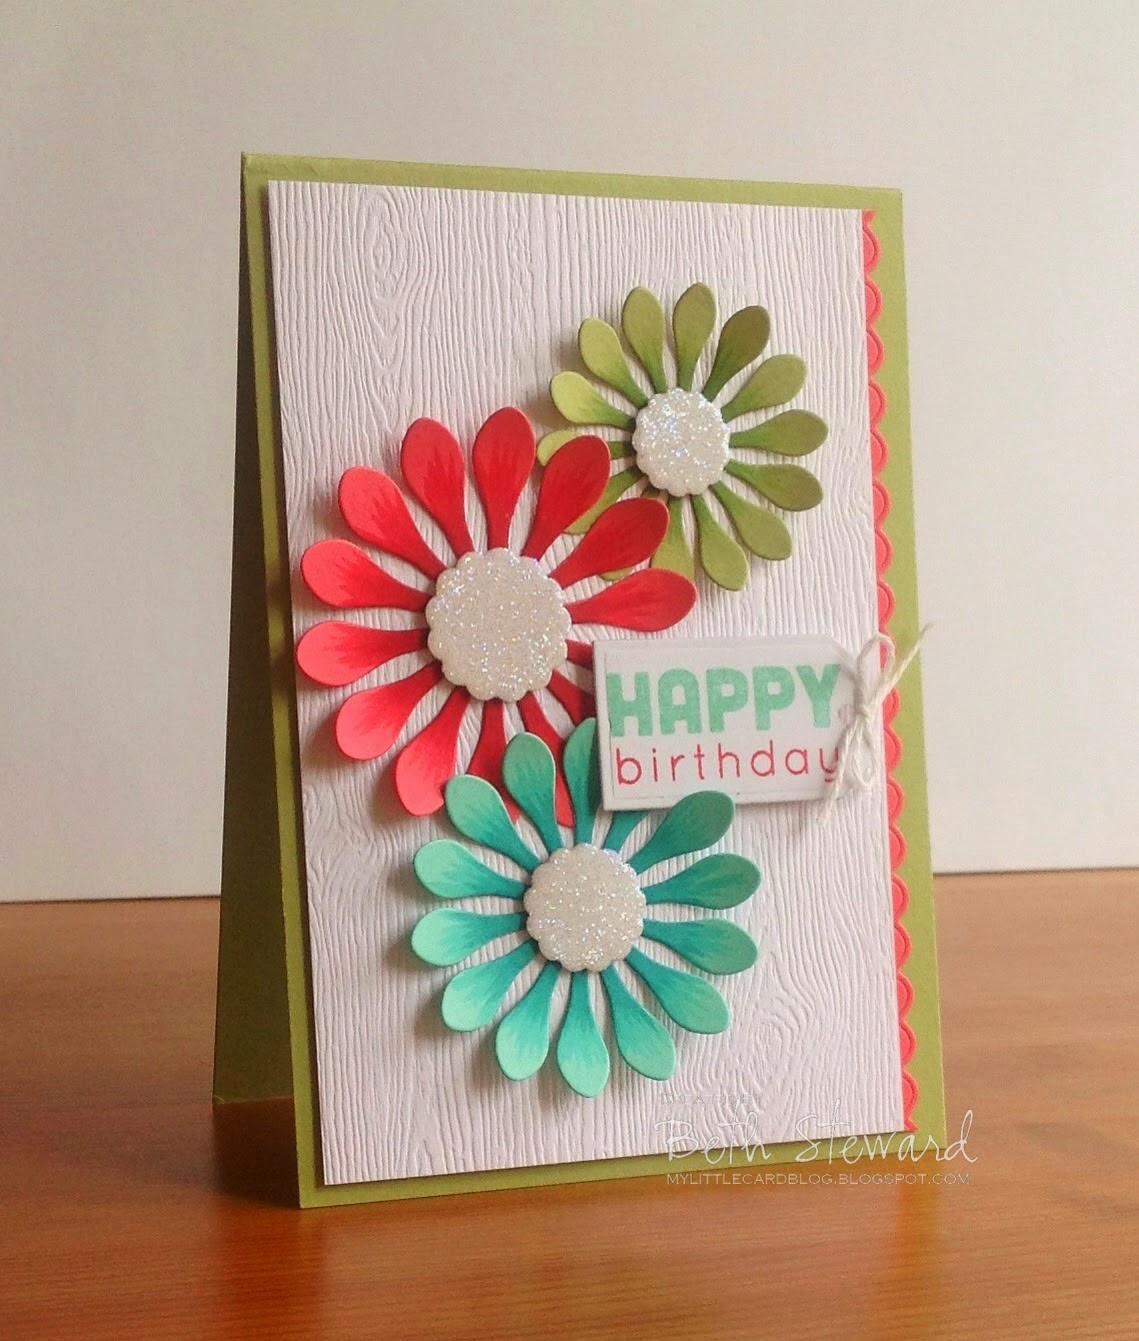 http://mylittlecardblog.blogspot.co.uk/2014/03/floral-birthday.html